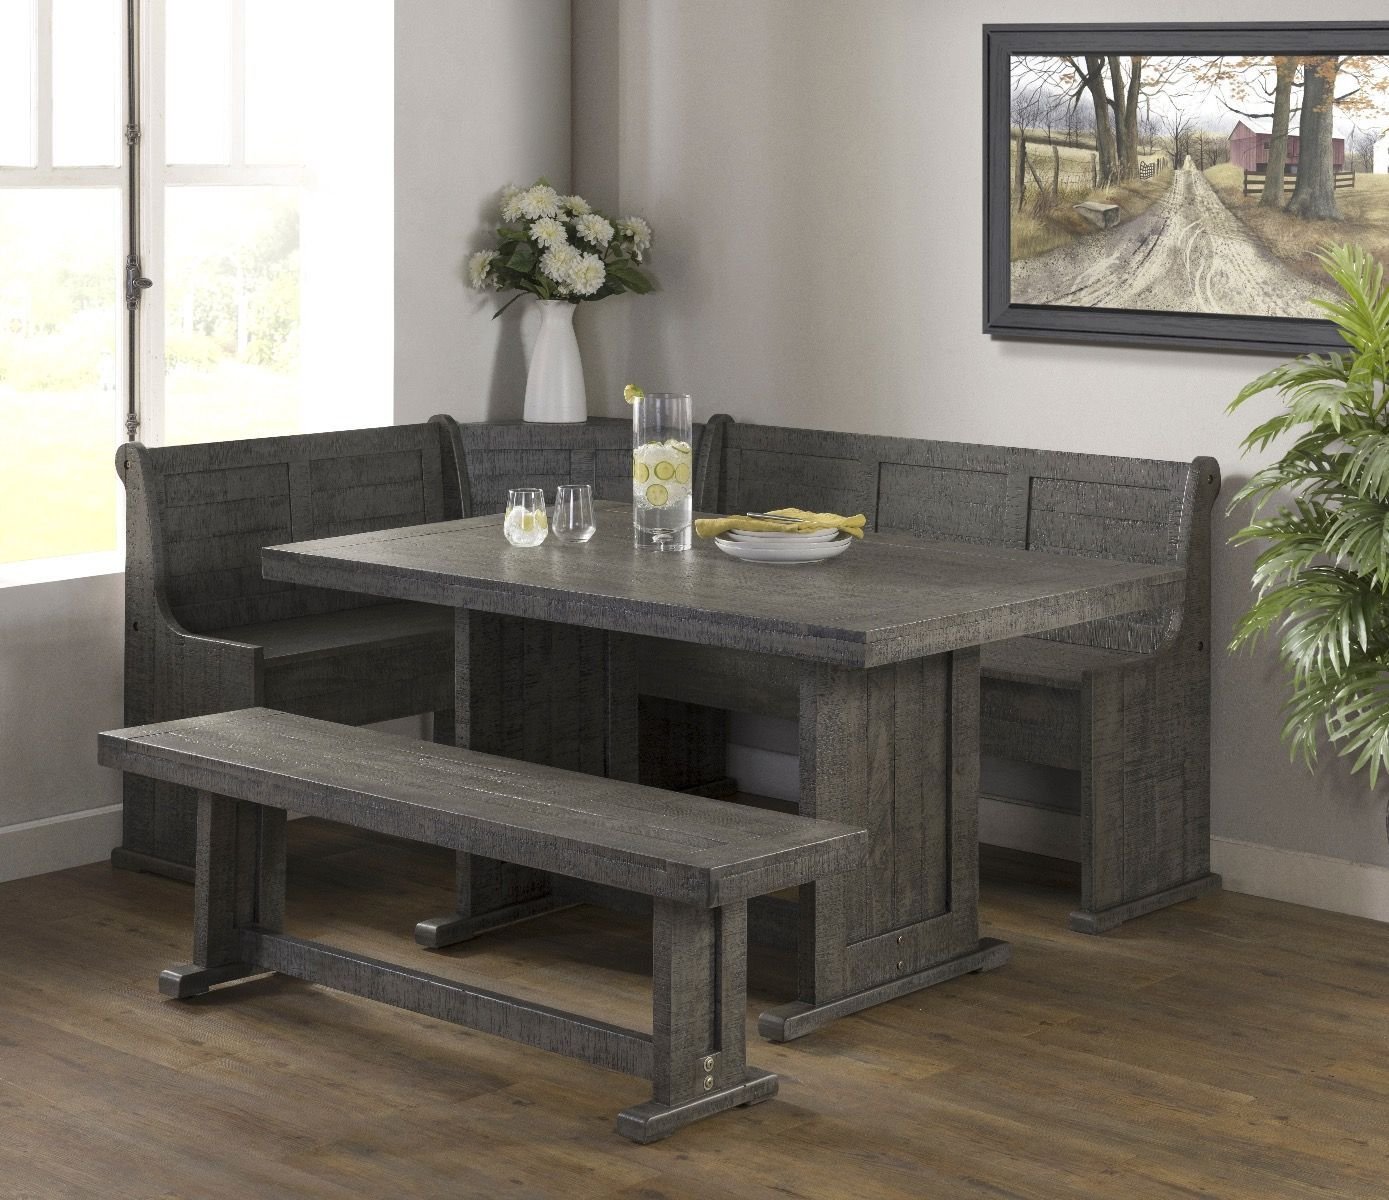 Vh 1890 5 Pc Gracie Oaks Merlinda Grey Distressed Finish Wood Solid Pine Breakfast Nook Table And Benches Corner Nook Dining Set Breakfast Nook Table Nook Dining Set